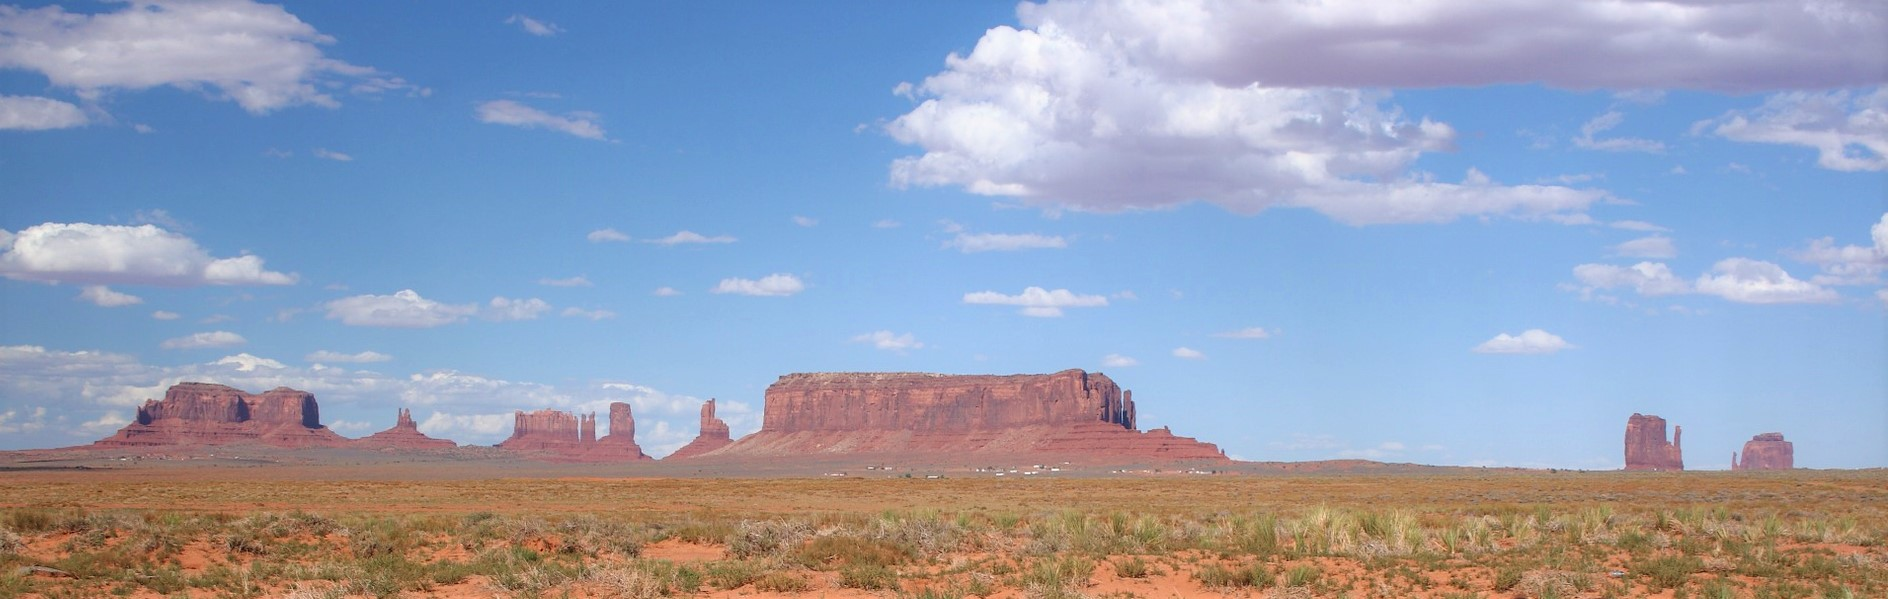 The Monument Valley | Breast Cancer Car Donations